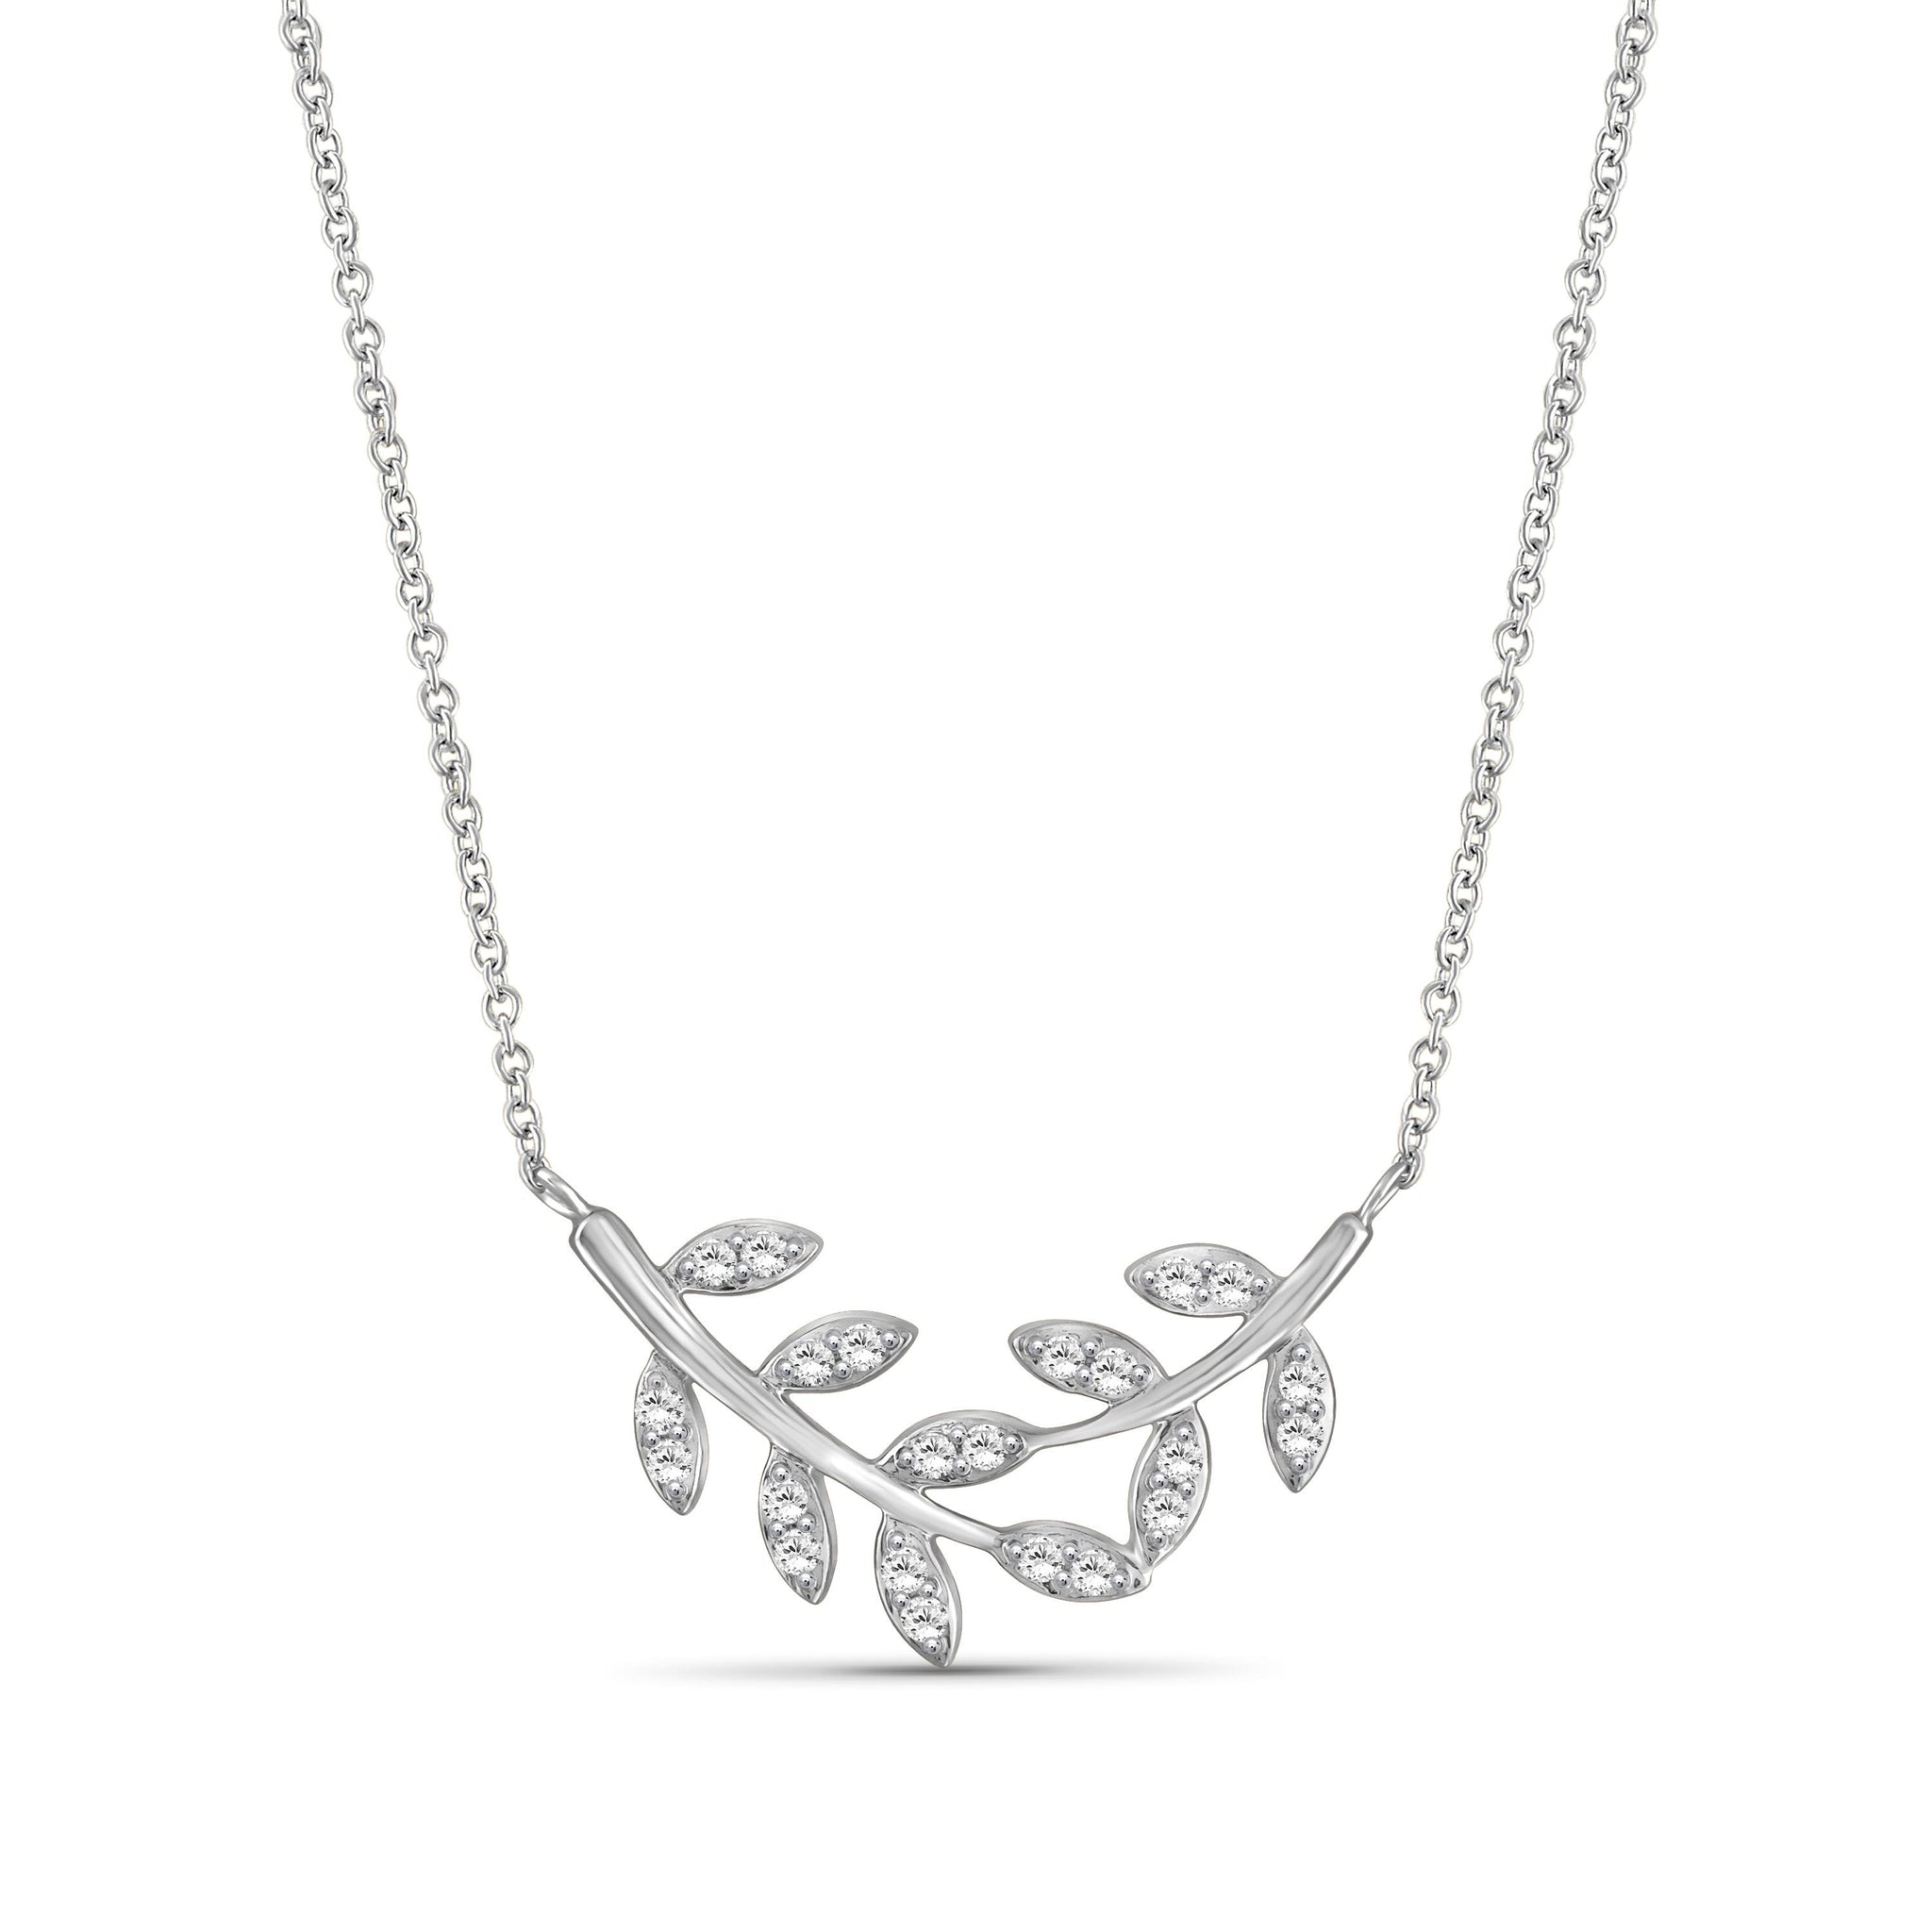 JewelersClub 1/4 Carat T.W. White Diamond Sterling Silver Leaf Necklace - Assorted Colors